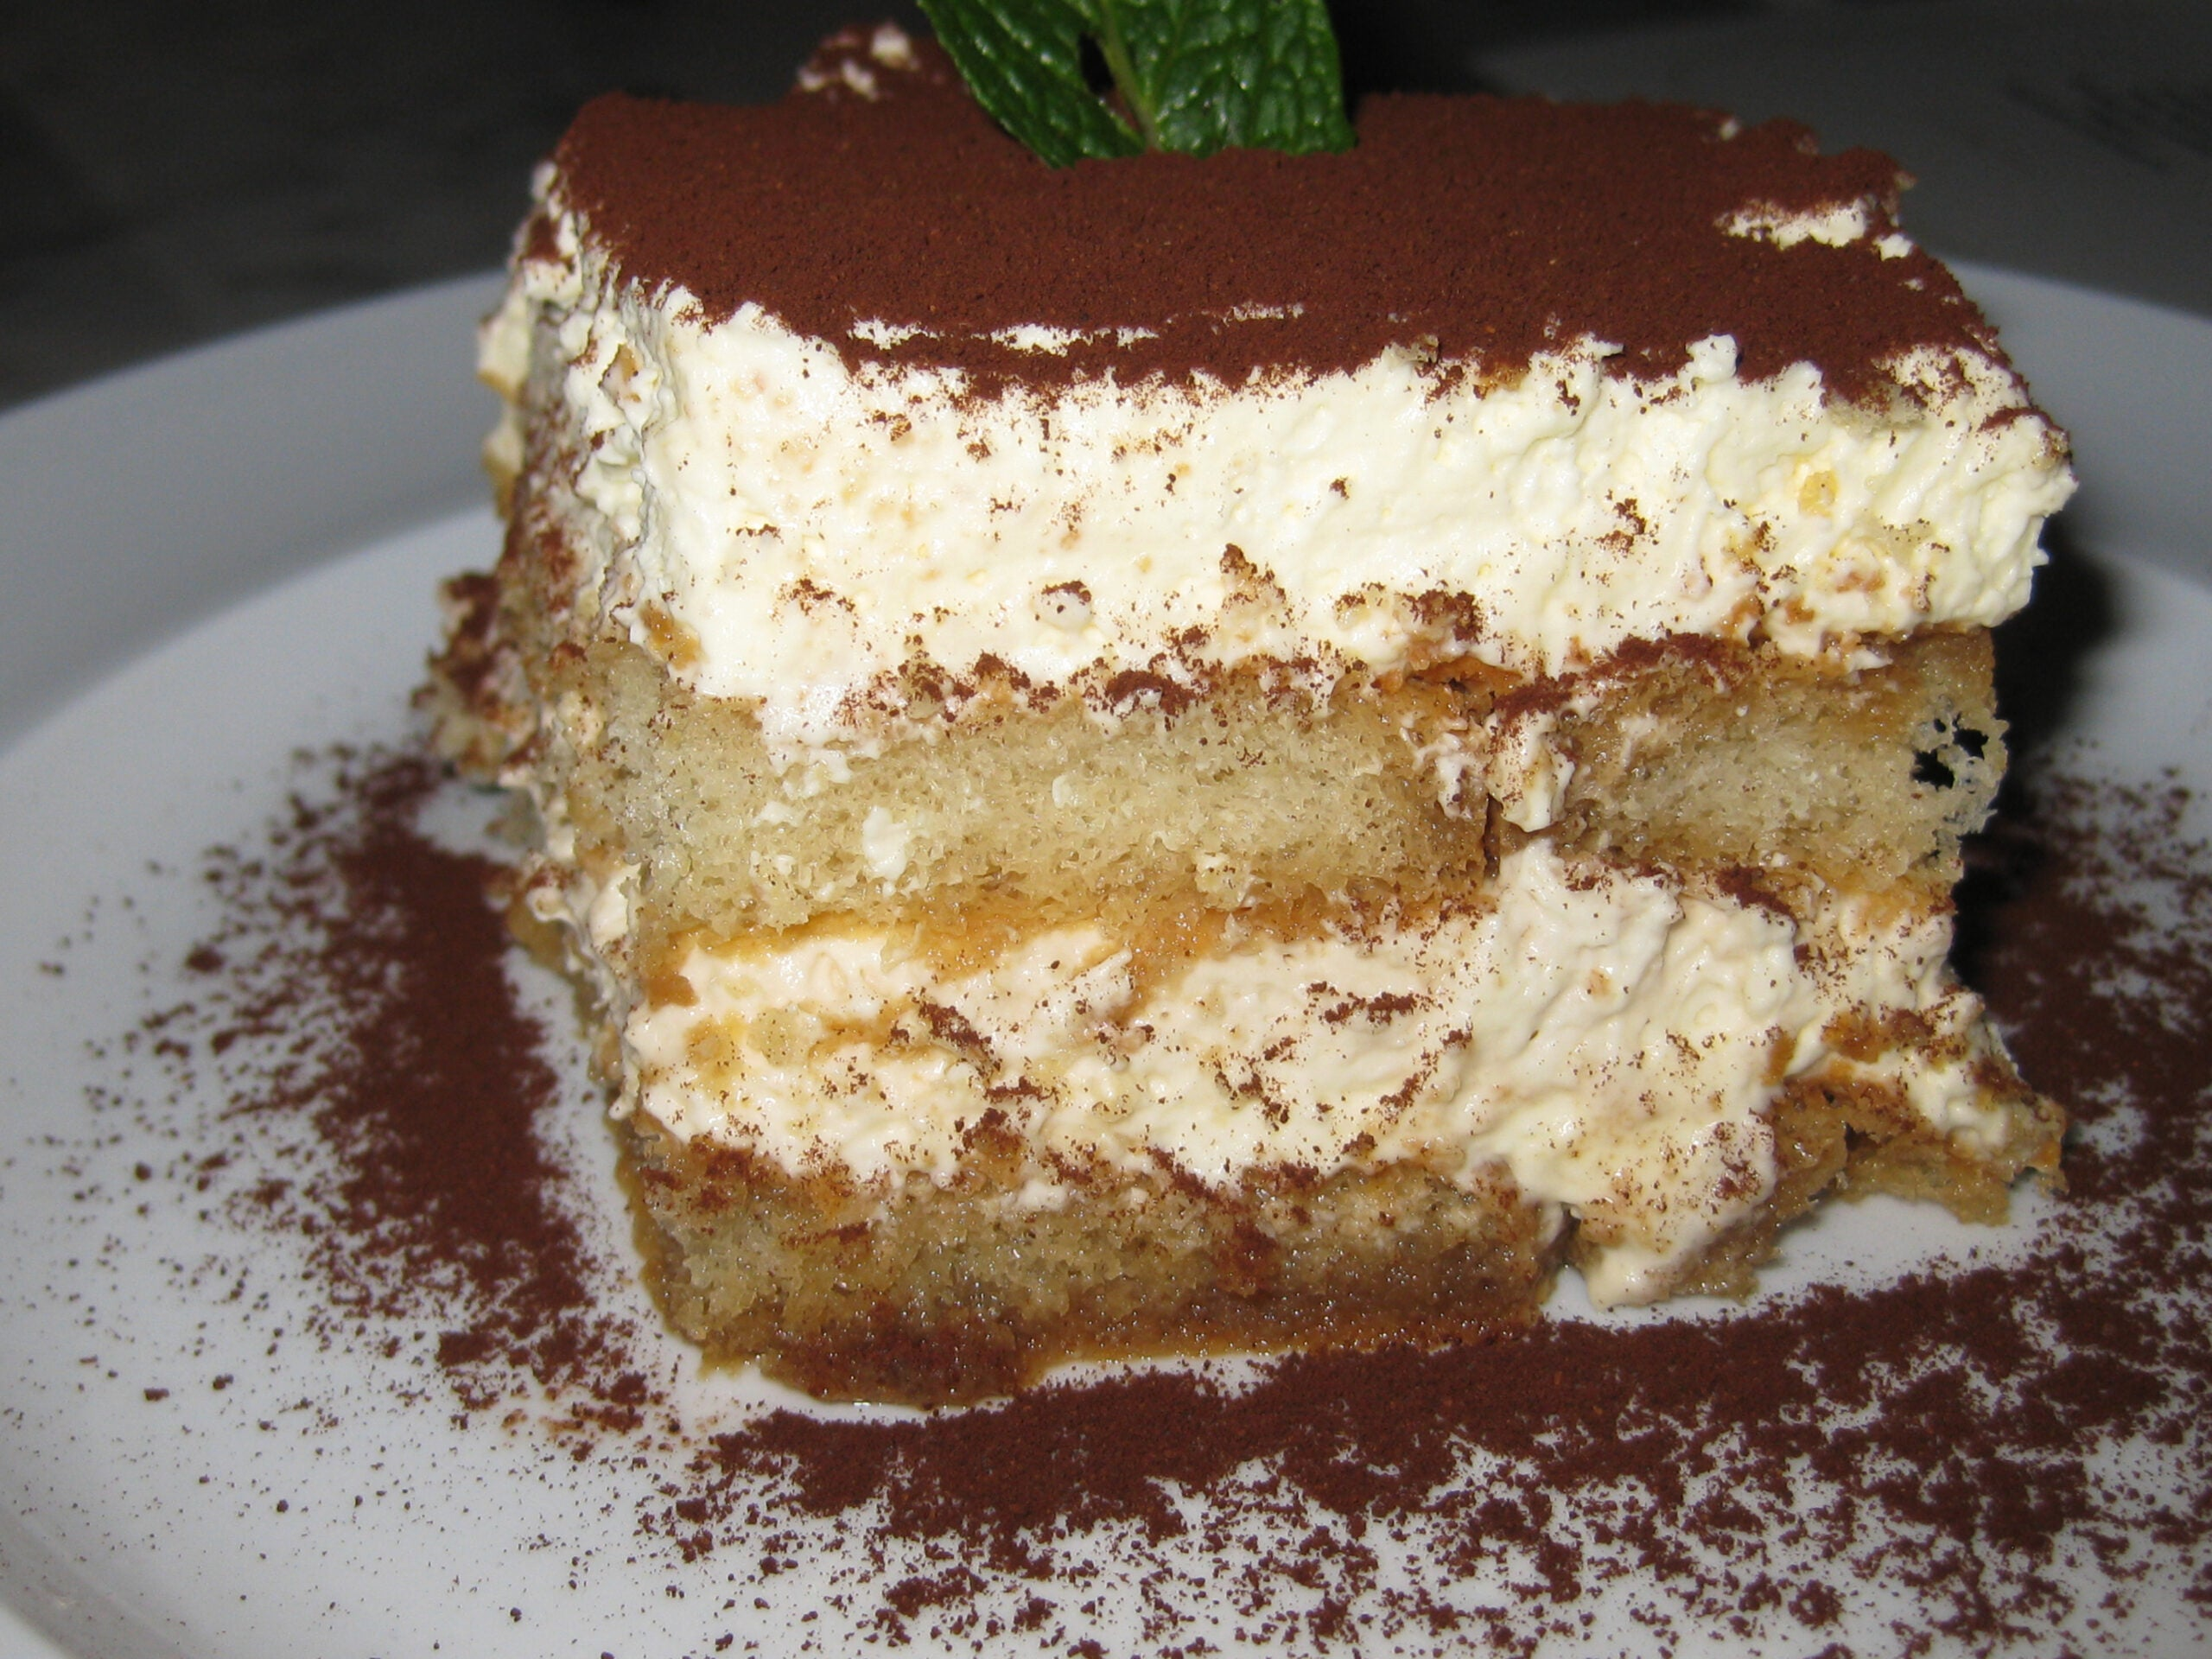 The First Tiramisu World Cup Highlights a Longstanding Debate Over the Dessert's Origins